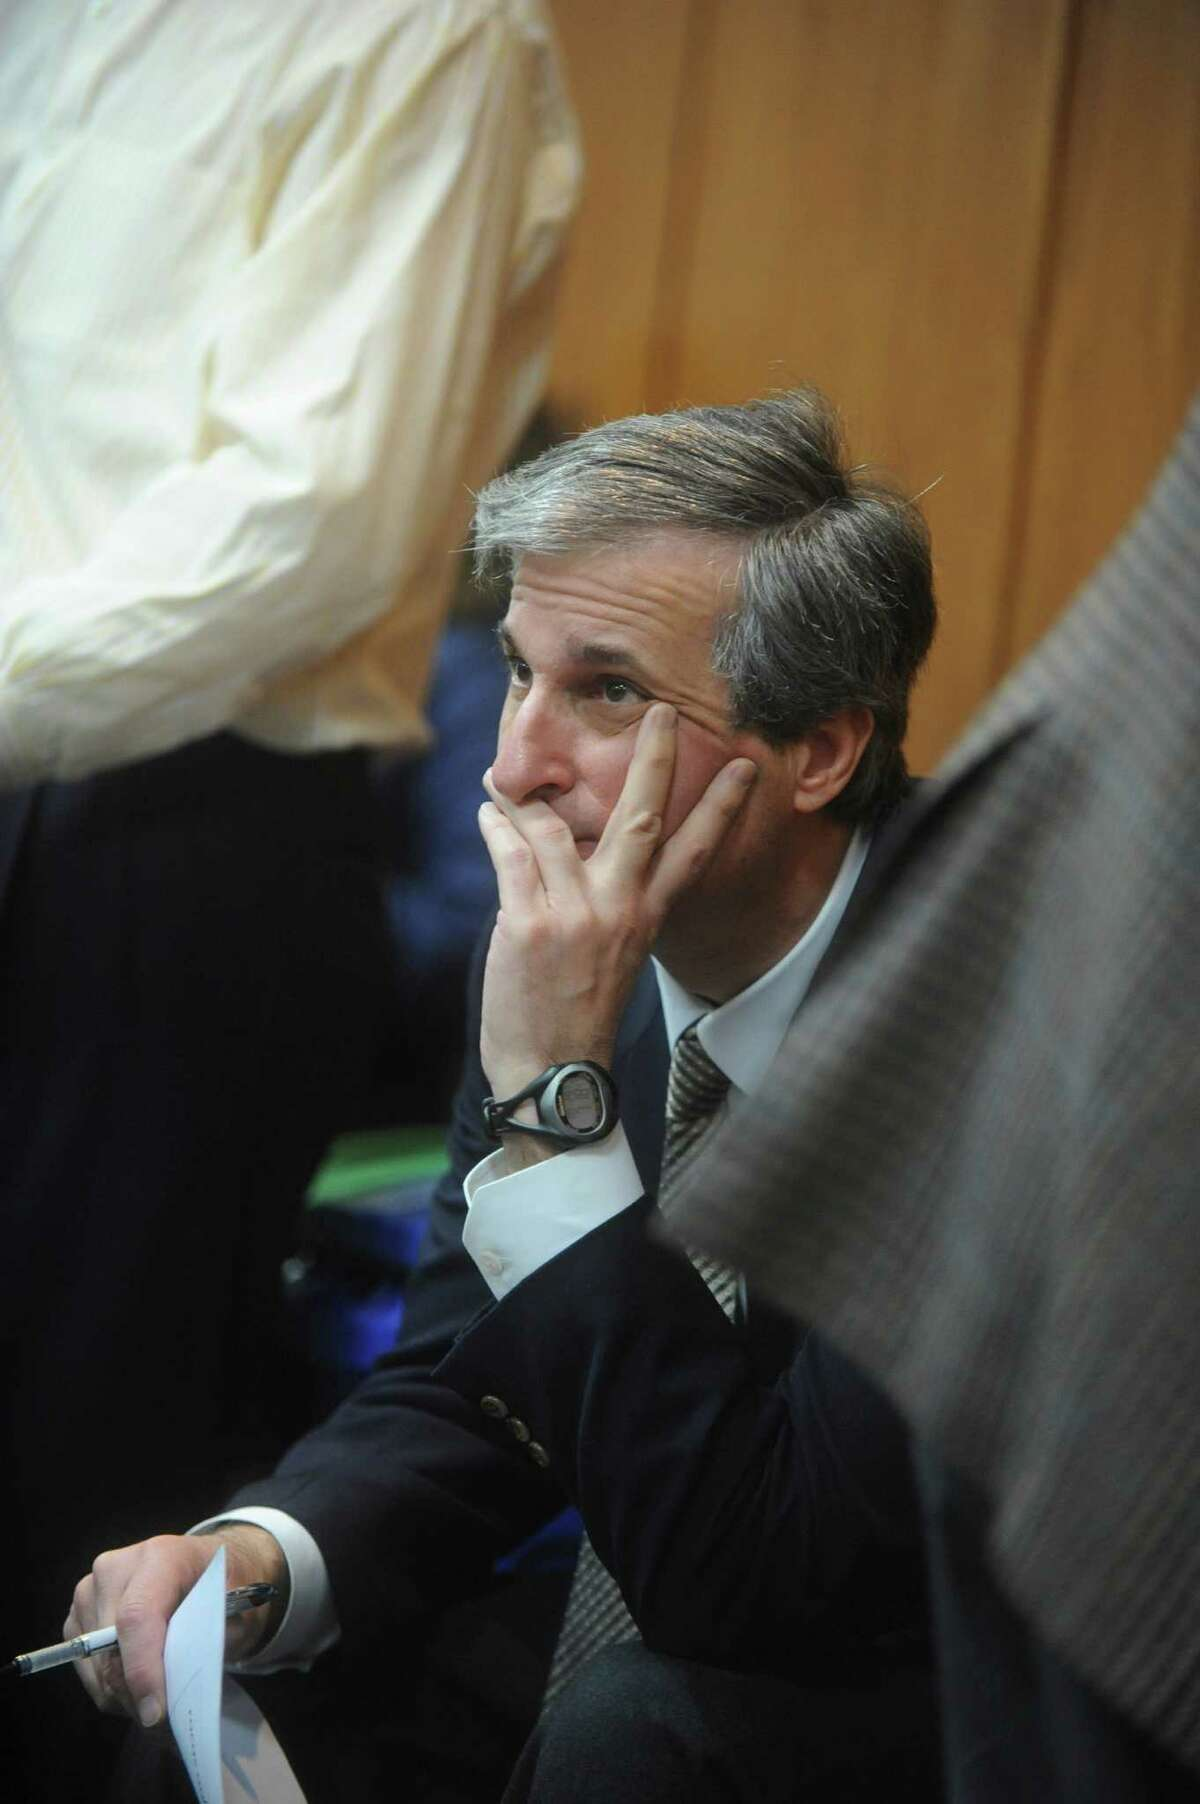 Joseph Pellegrino, the chairman of the Board of Estimate and Taxation Budget Committee, shown here in 2011.